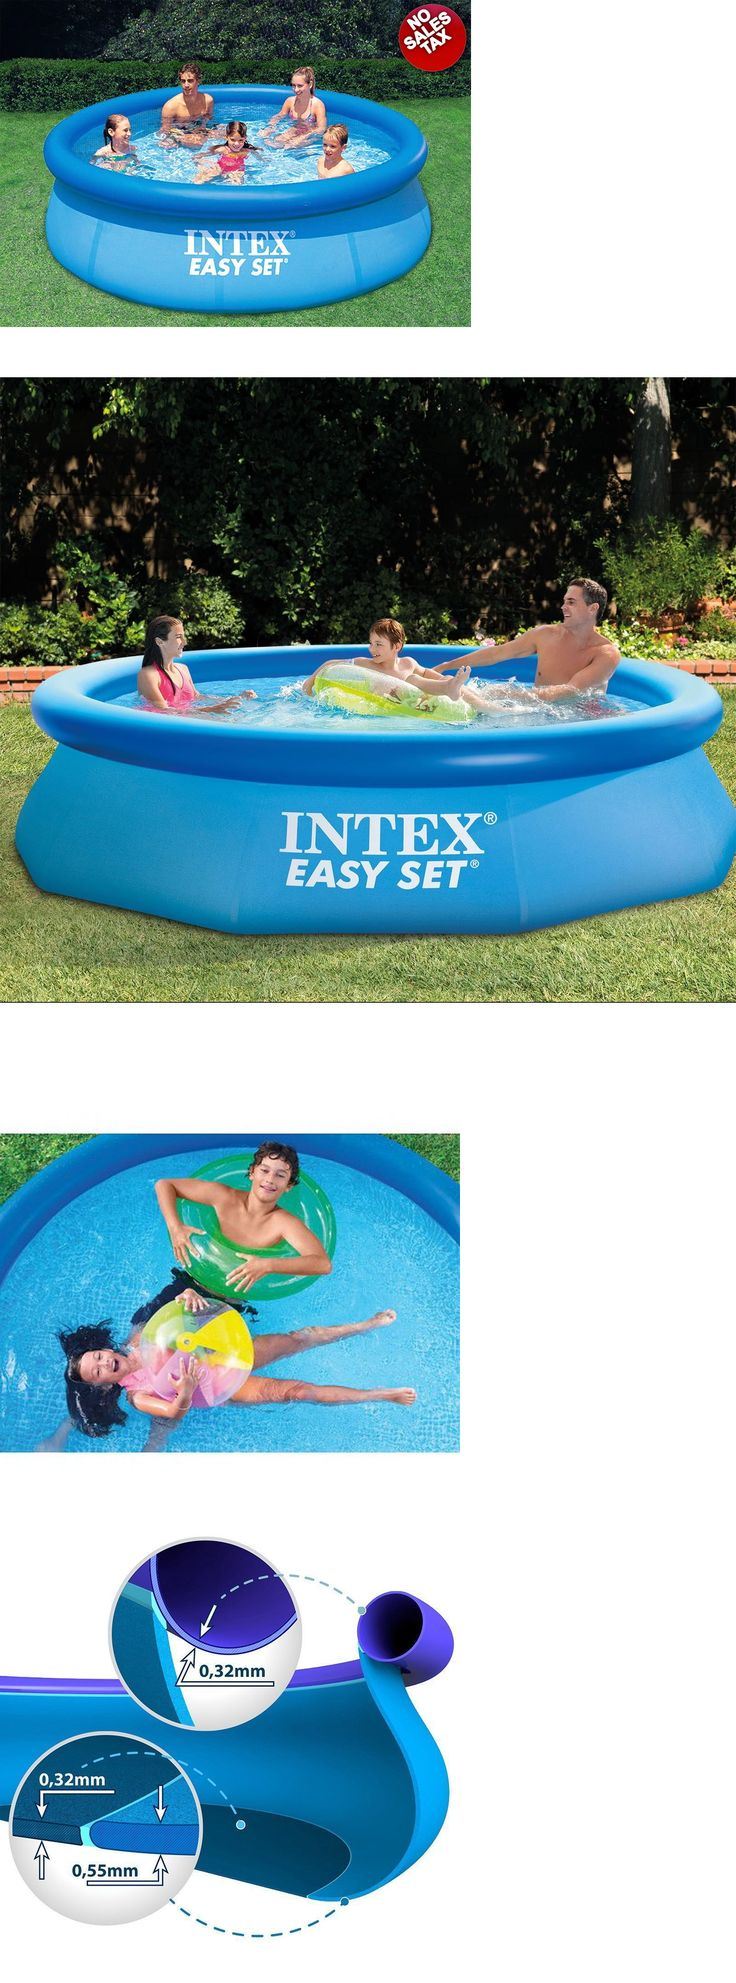 Above-Ground Pools 116405: Intex 10 Ft X 30 In Deep Easy Set Above Ground Family Swimming Pool Super-Tough -> BUY IT NOW ONLY: $69.95 on eBay!